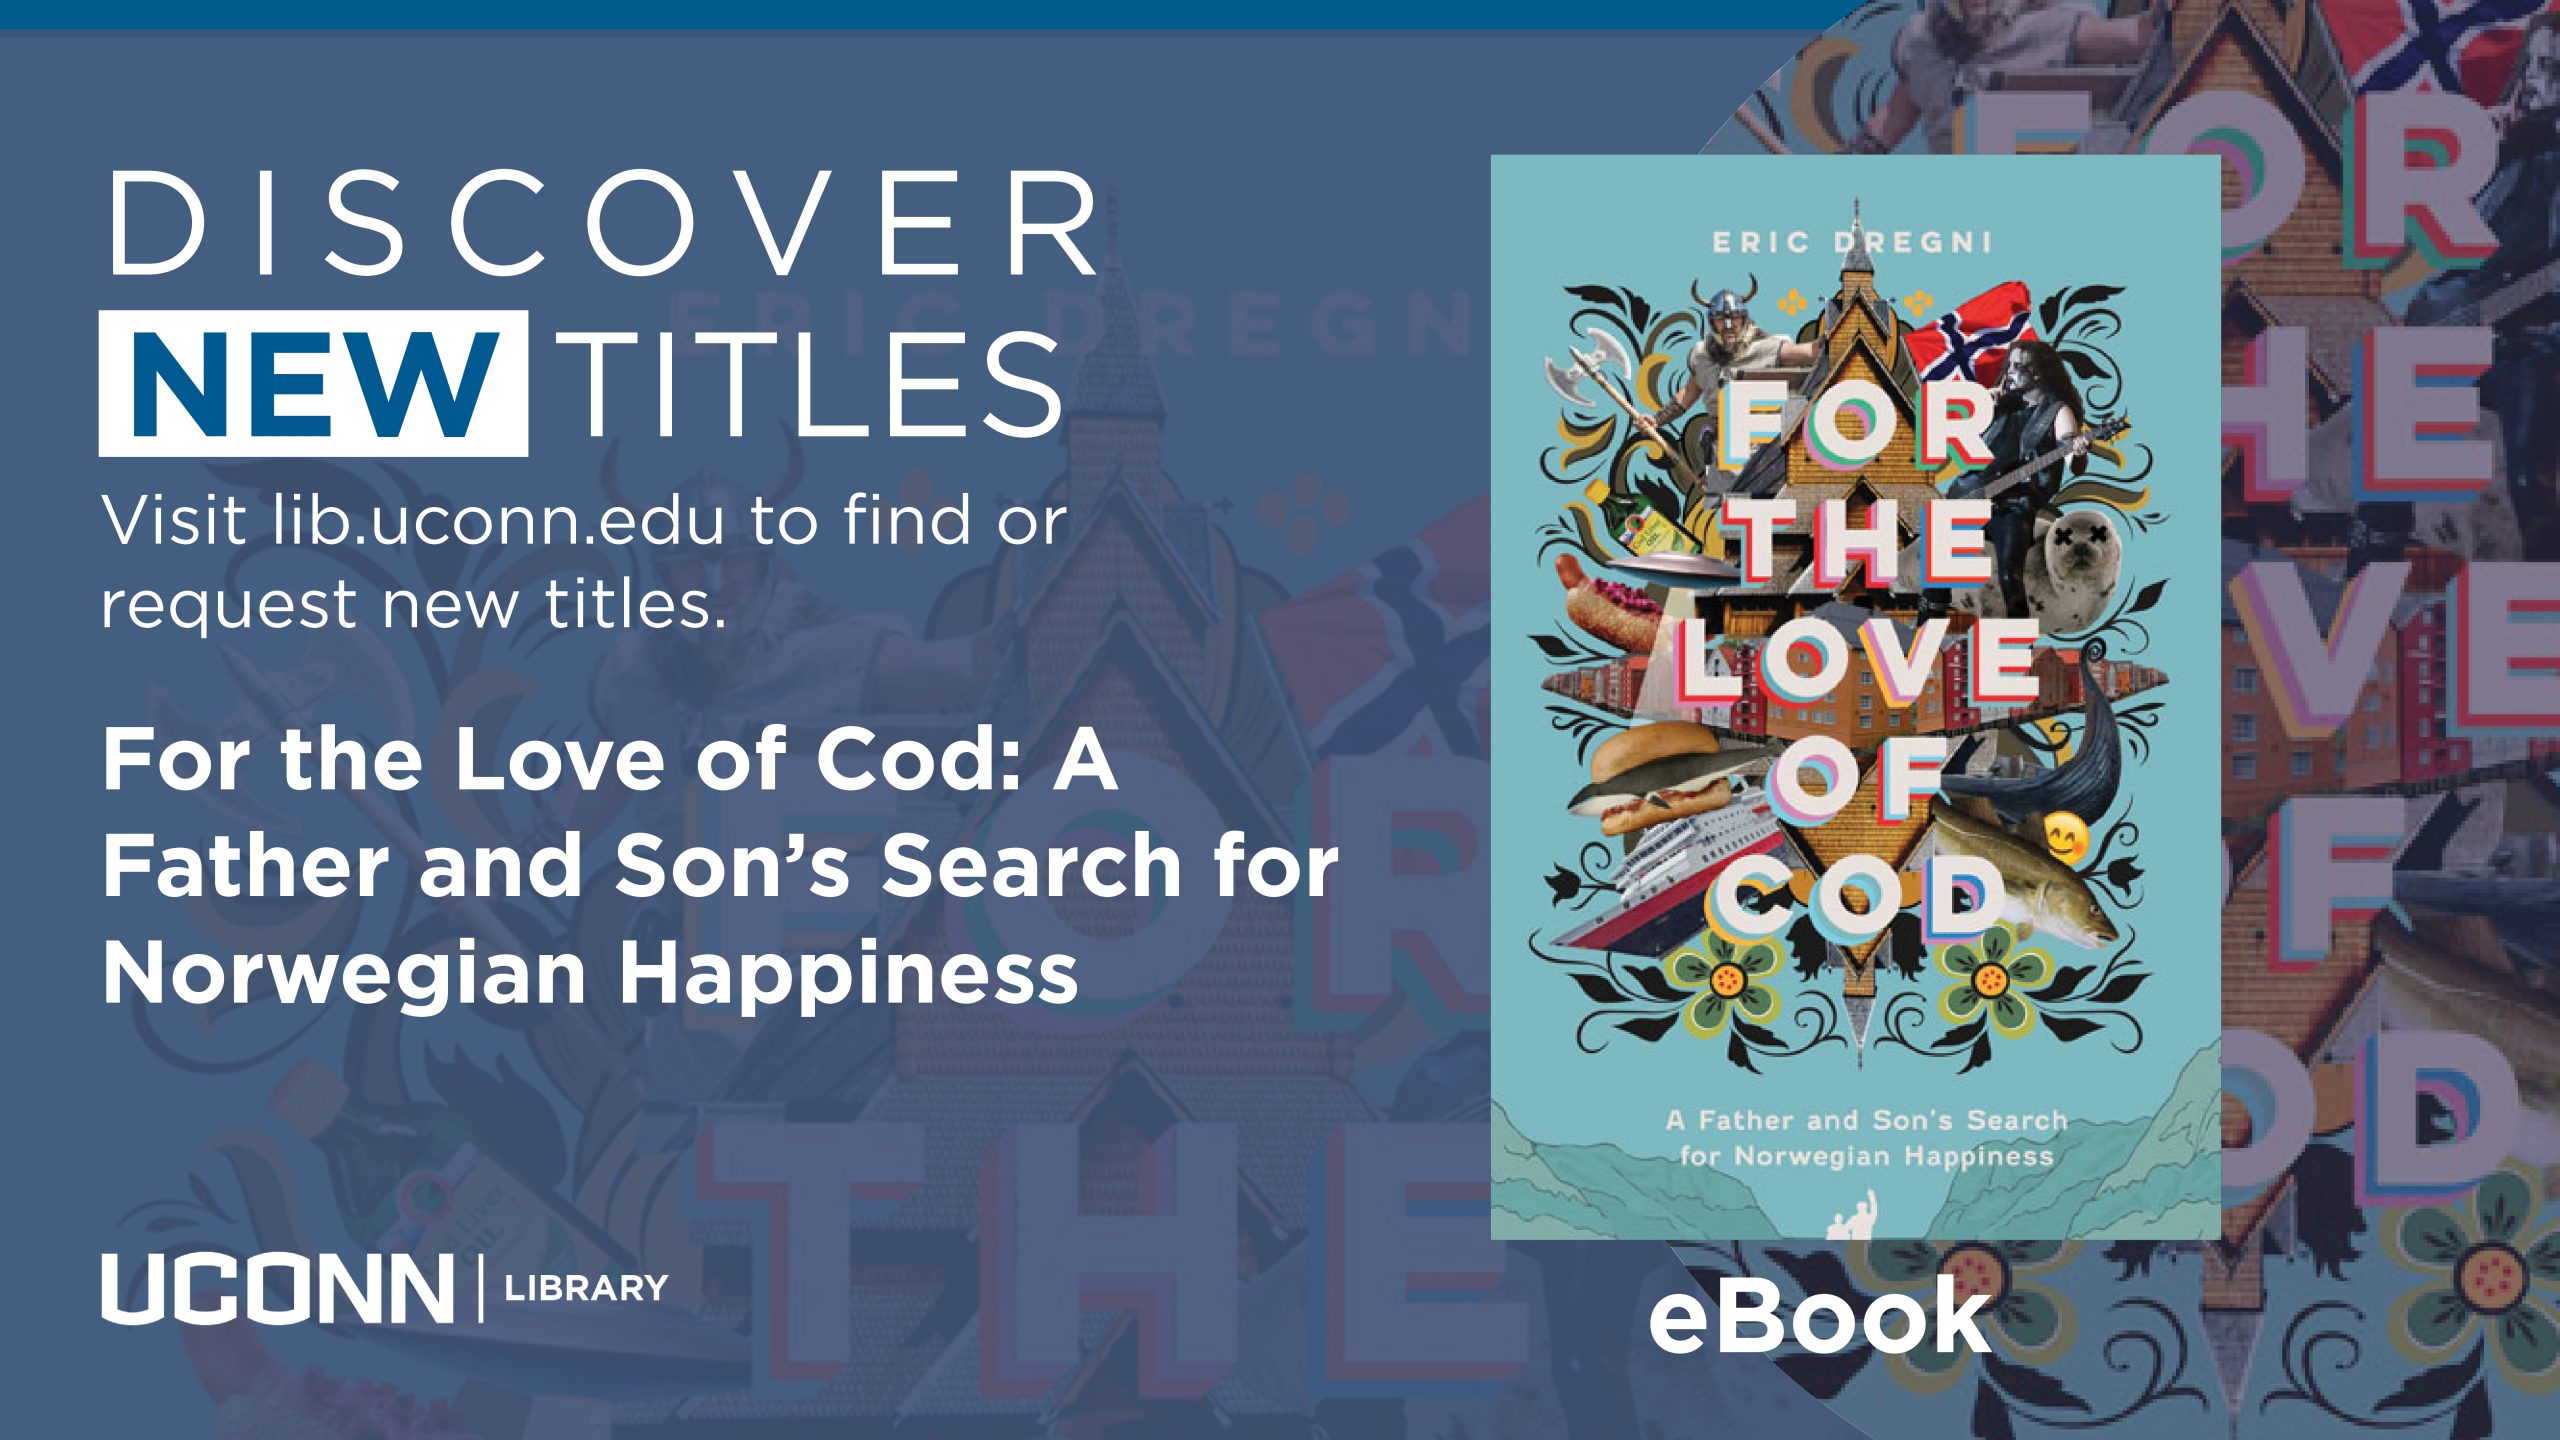 Discover New Titles, For the Love of Cod: A Father and Son's Search for Norwegian Happiness, eBook, Visit lib.uconn.edu to find or request new titles.